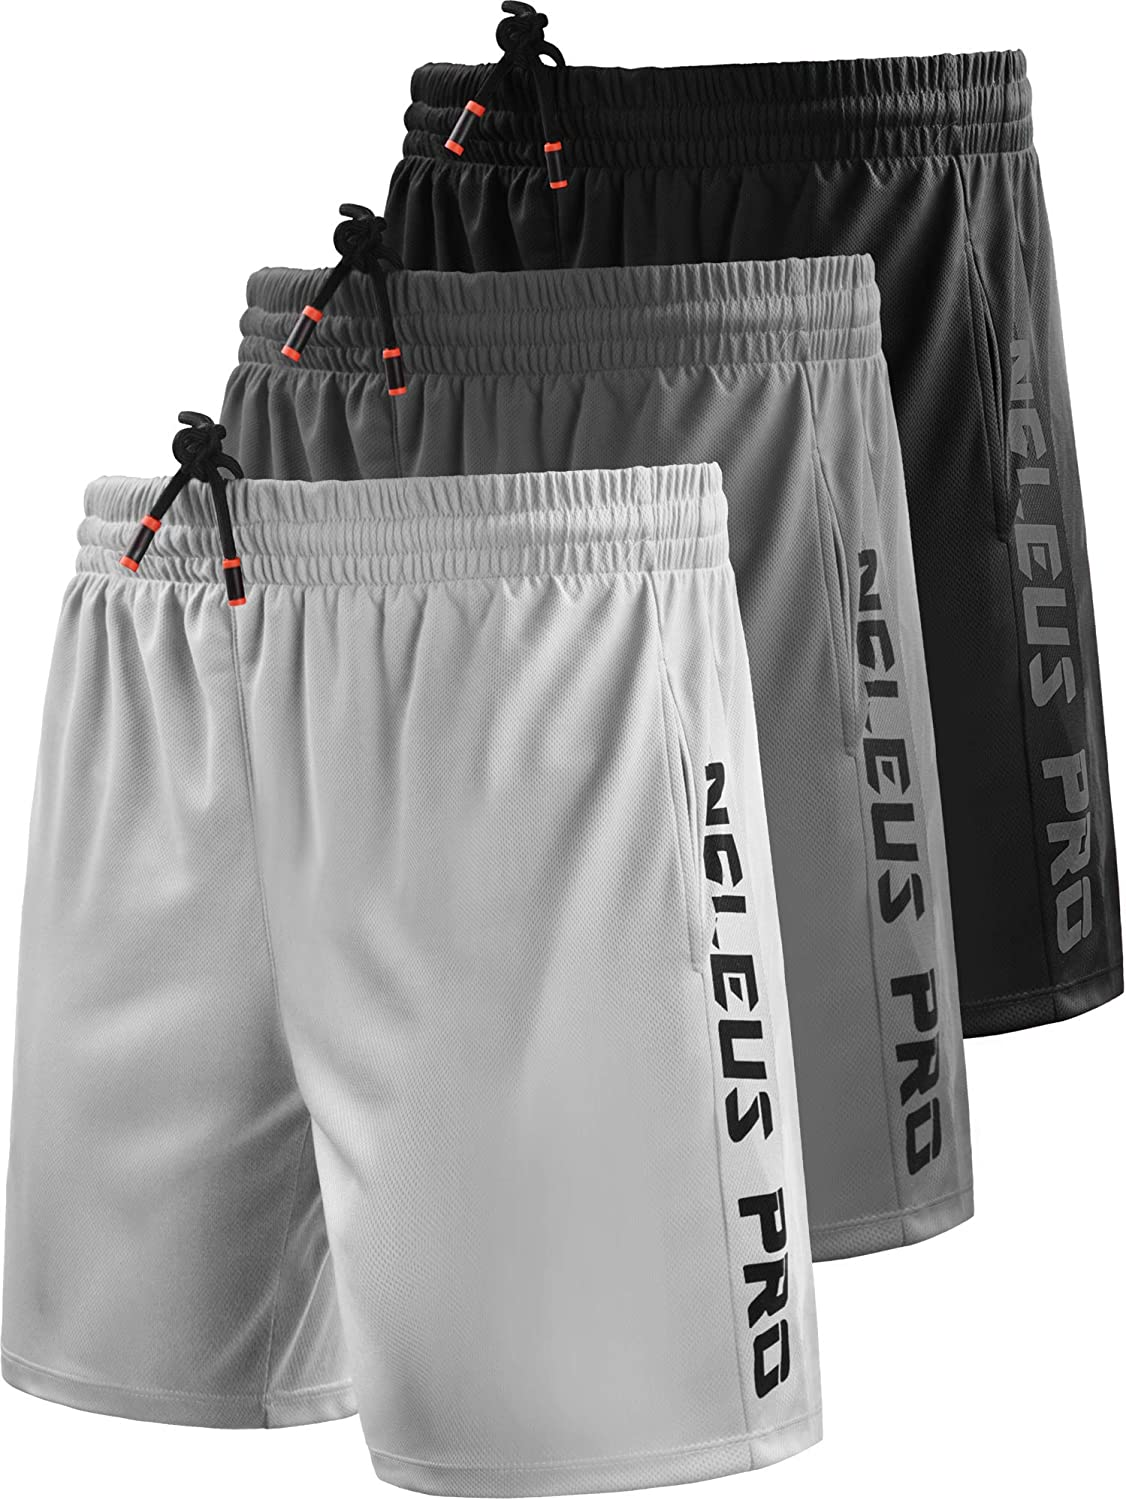 favorite Neleus Men's Lightweight Workout Al sold out. Running Shorts with Po Athletic